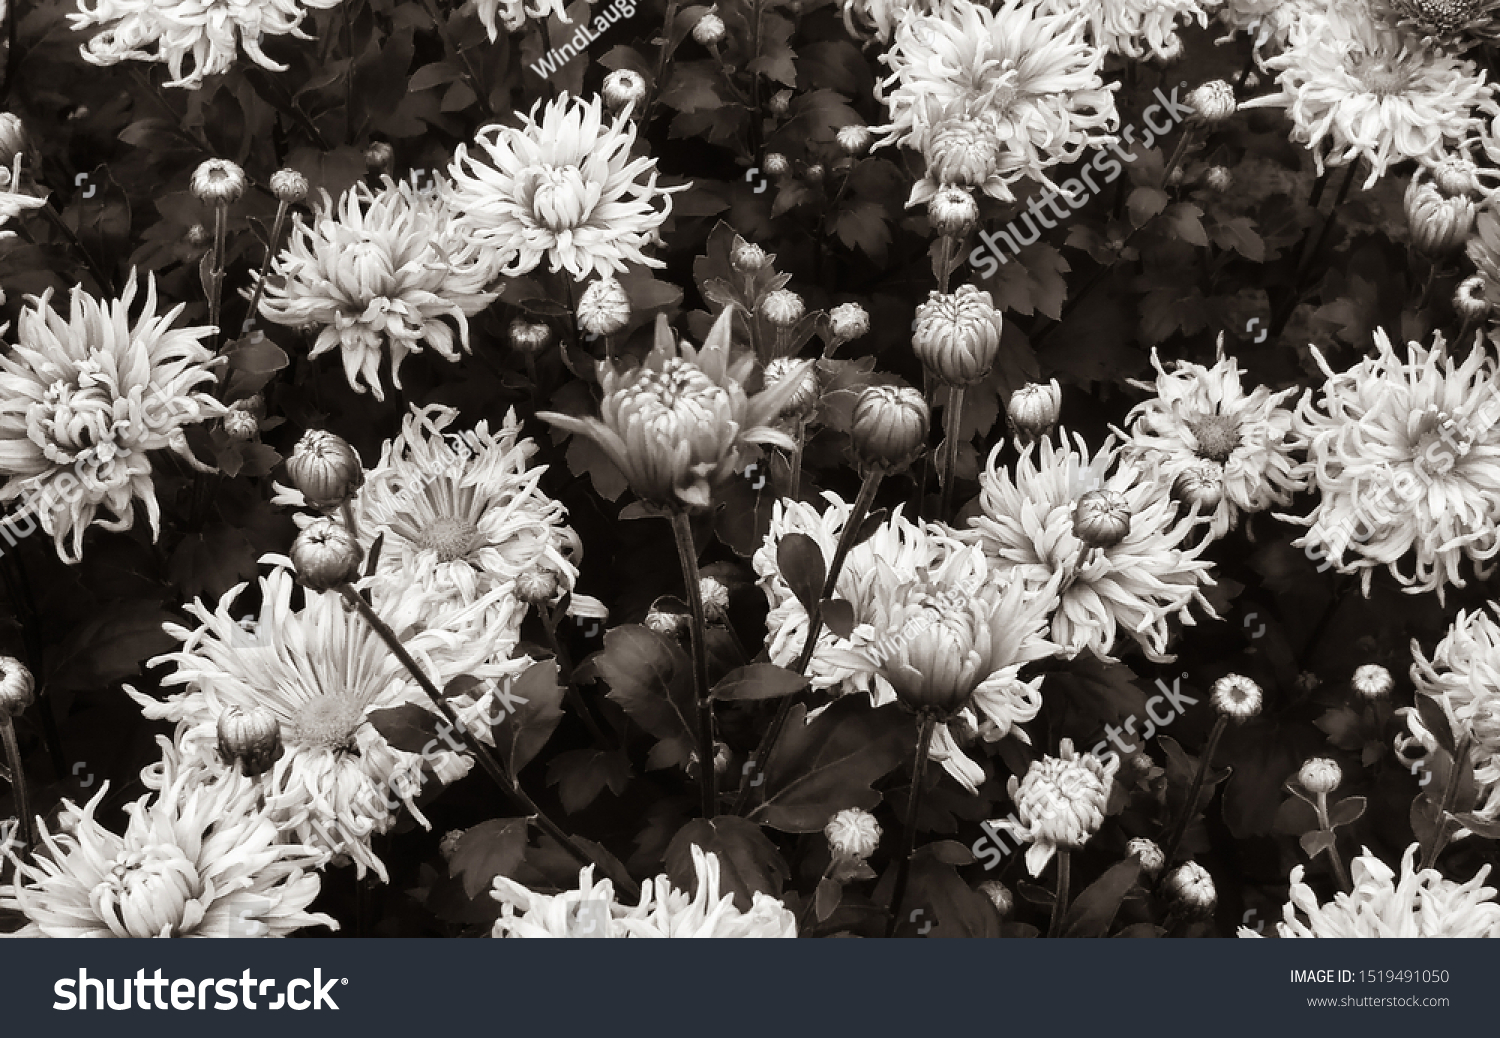 Chrysanthemum Closeup White Daisy Flowers Macro Stock Photo Edit